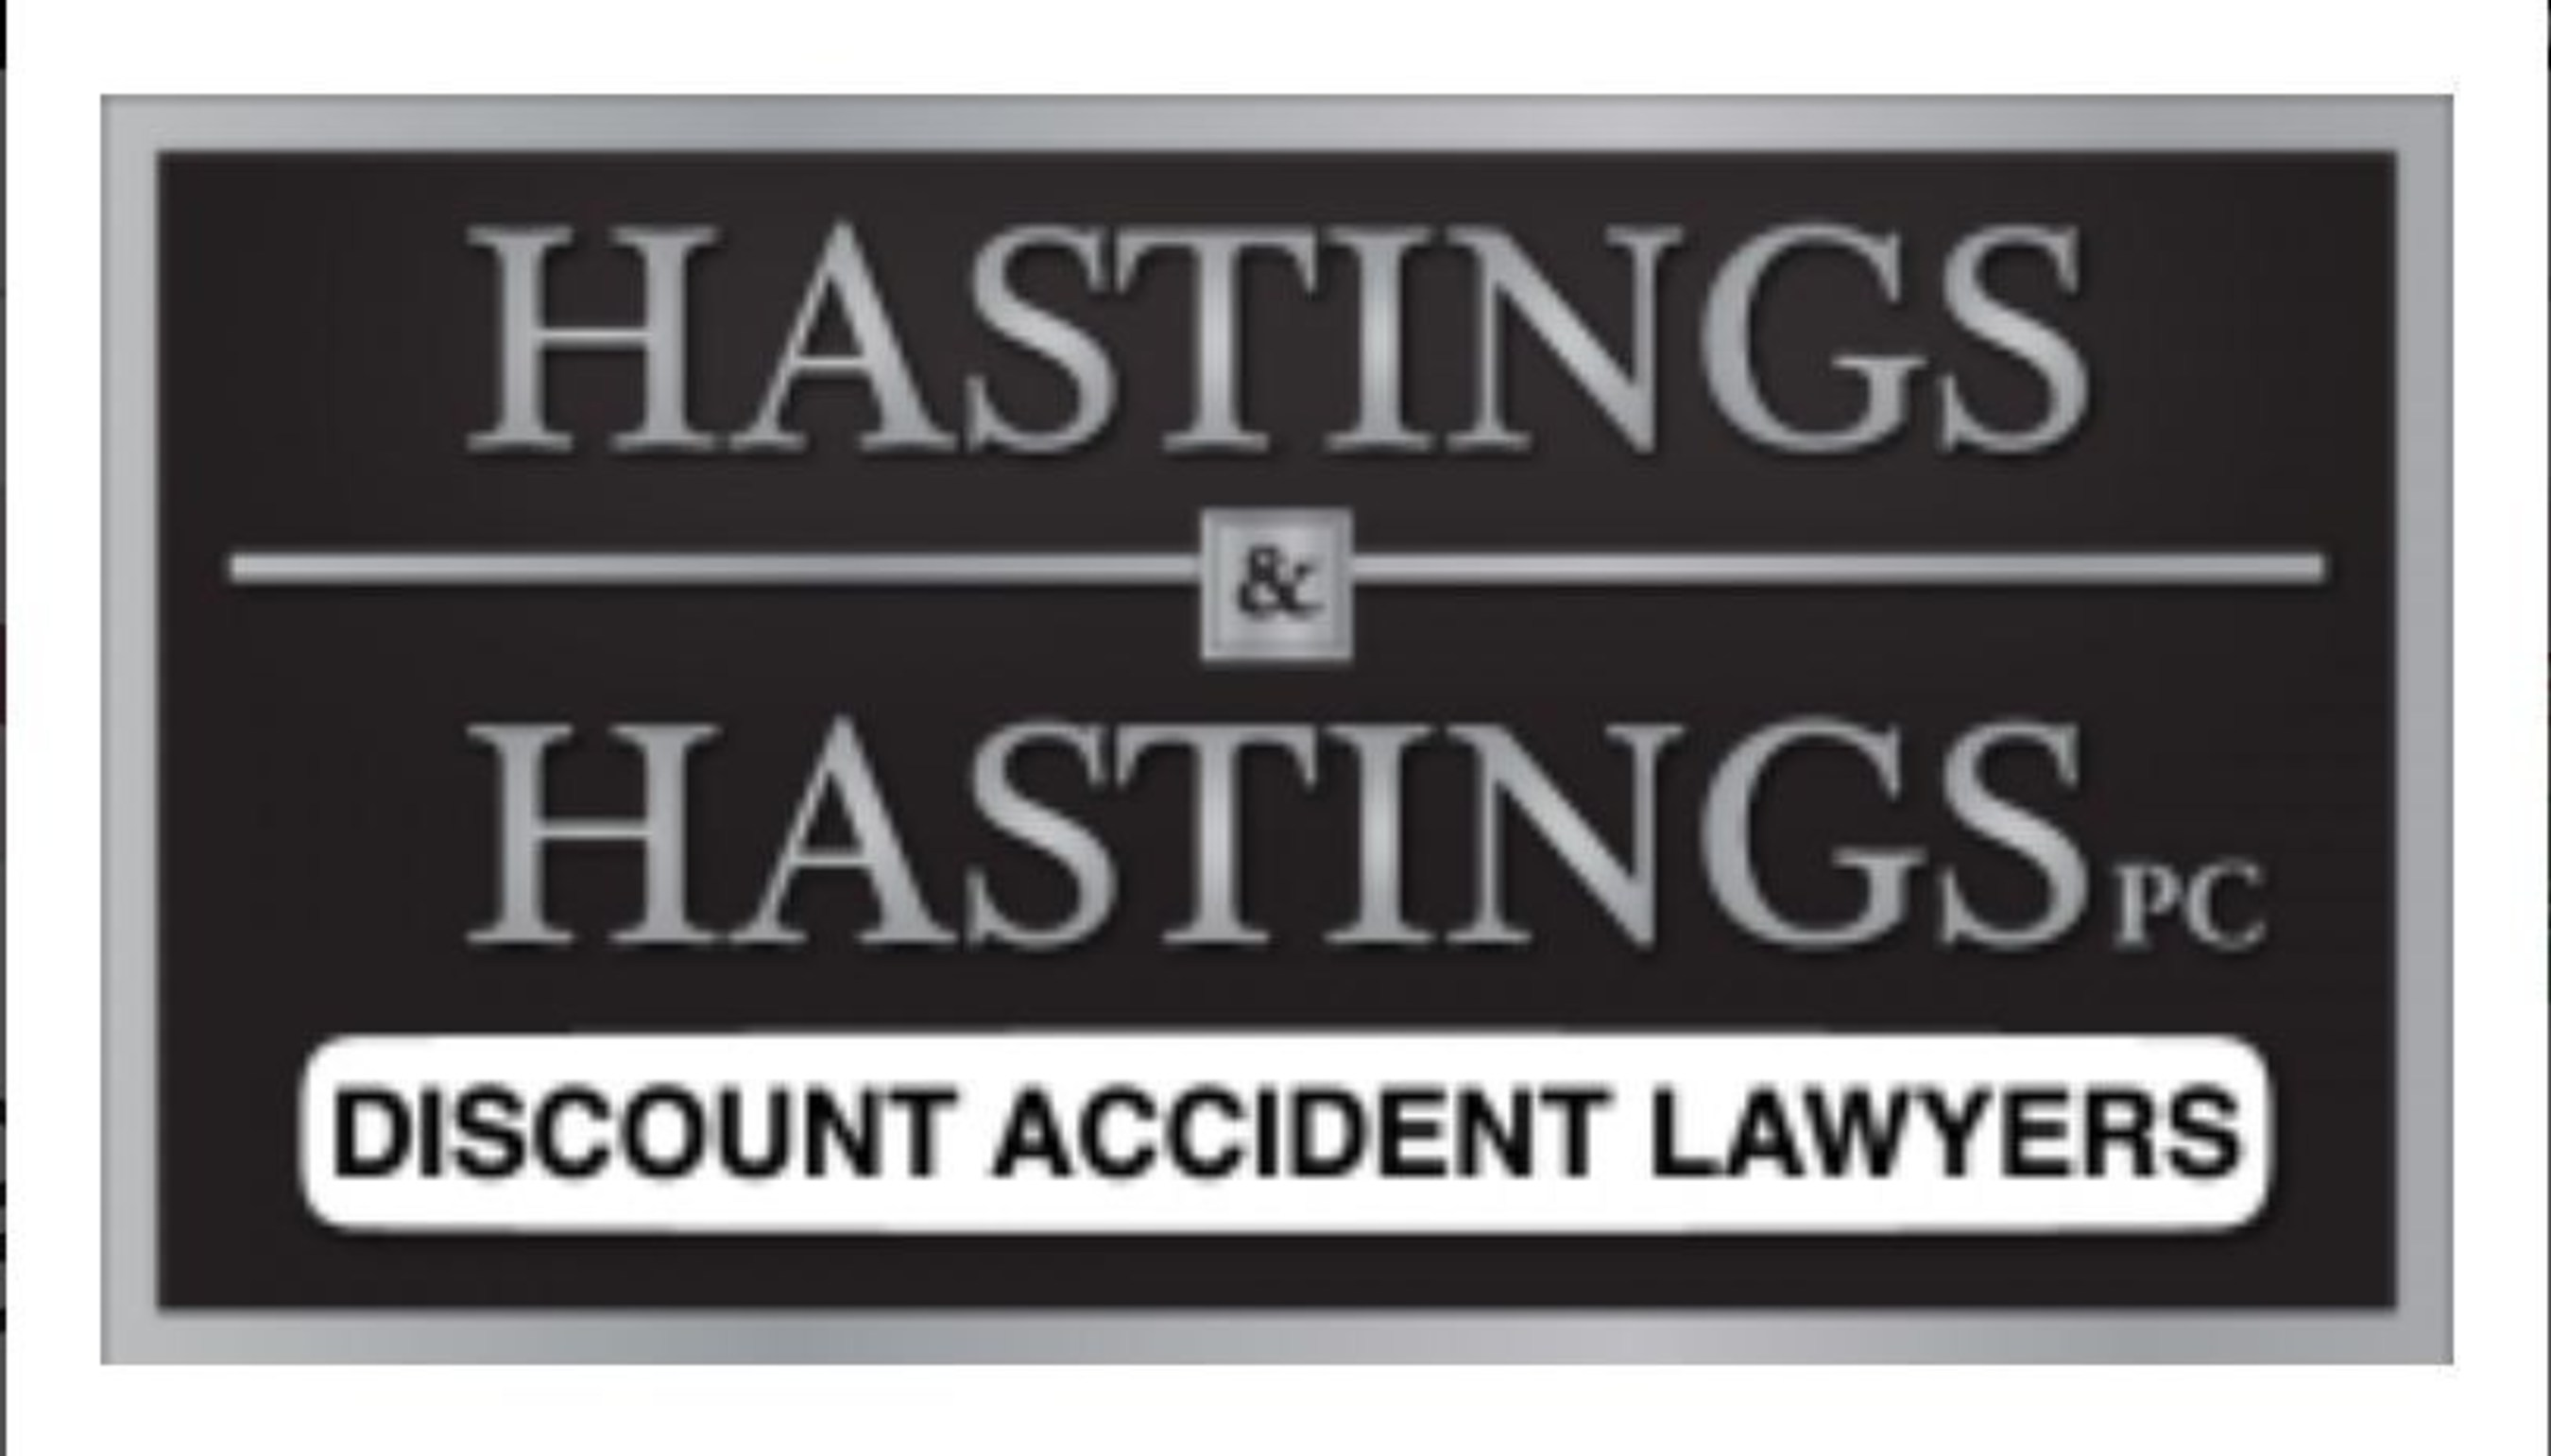 Hastings & Hastings Is Pleased to Promote the Second Annual Down Right Beautiful Fashion Show